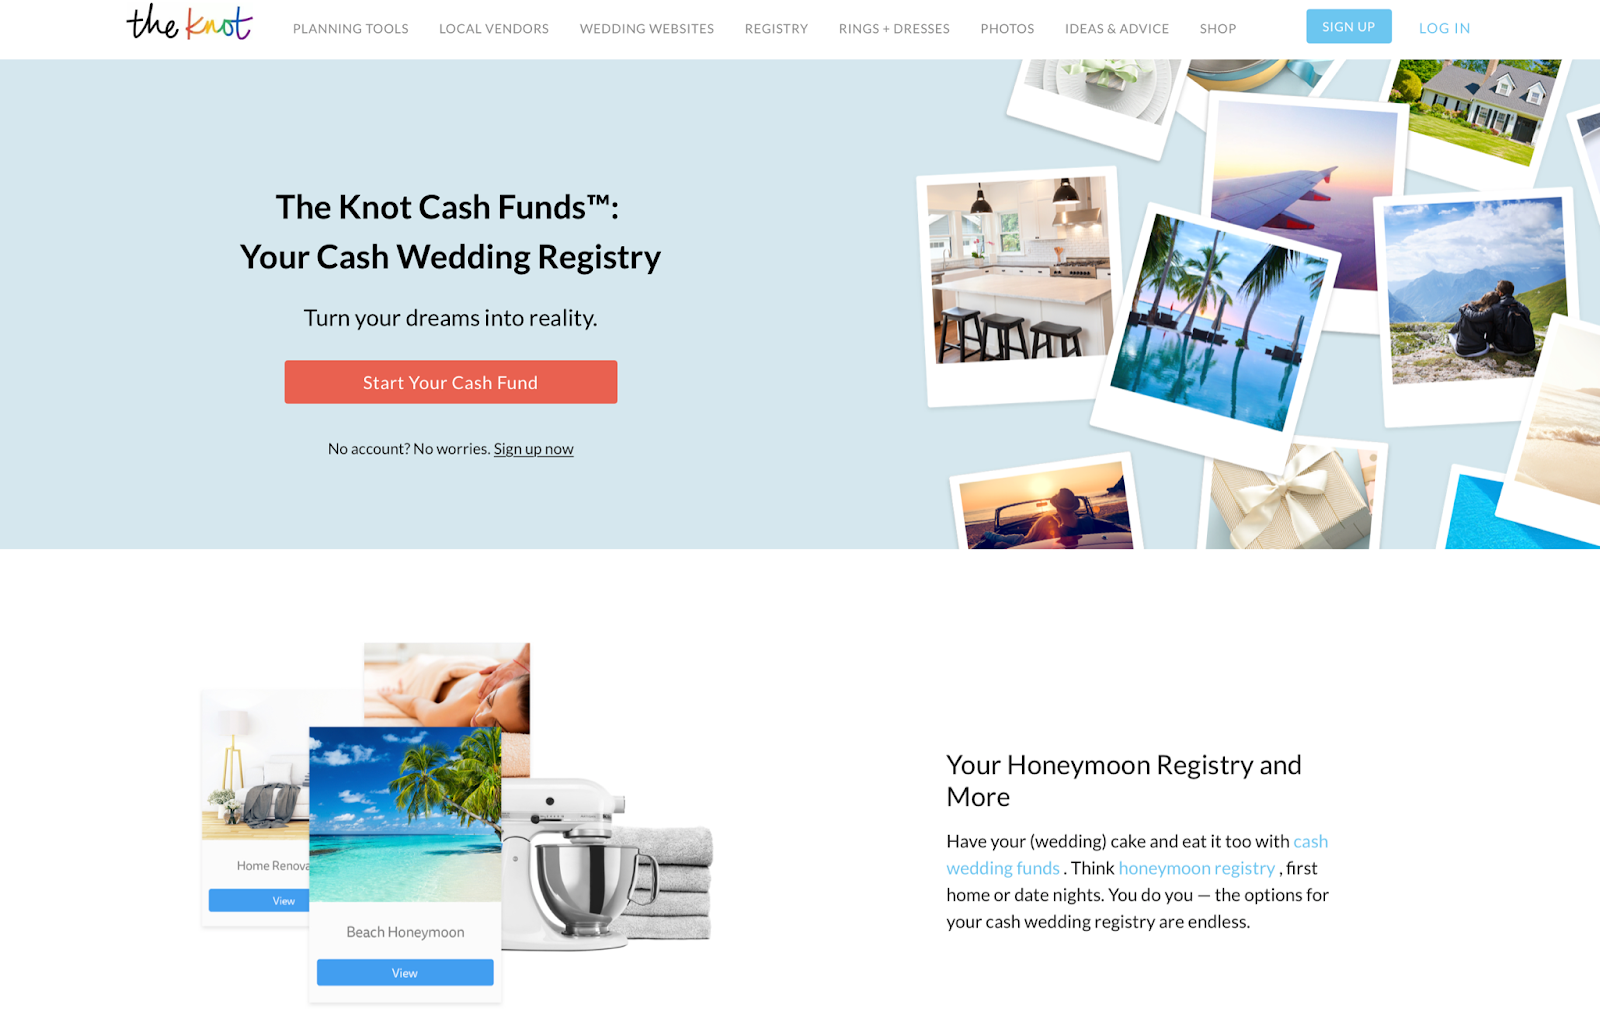 the knot cash fund wedding and honeymoon registry